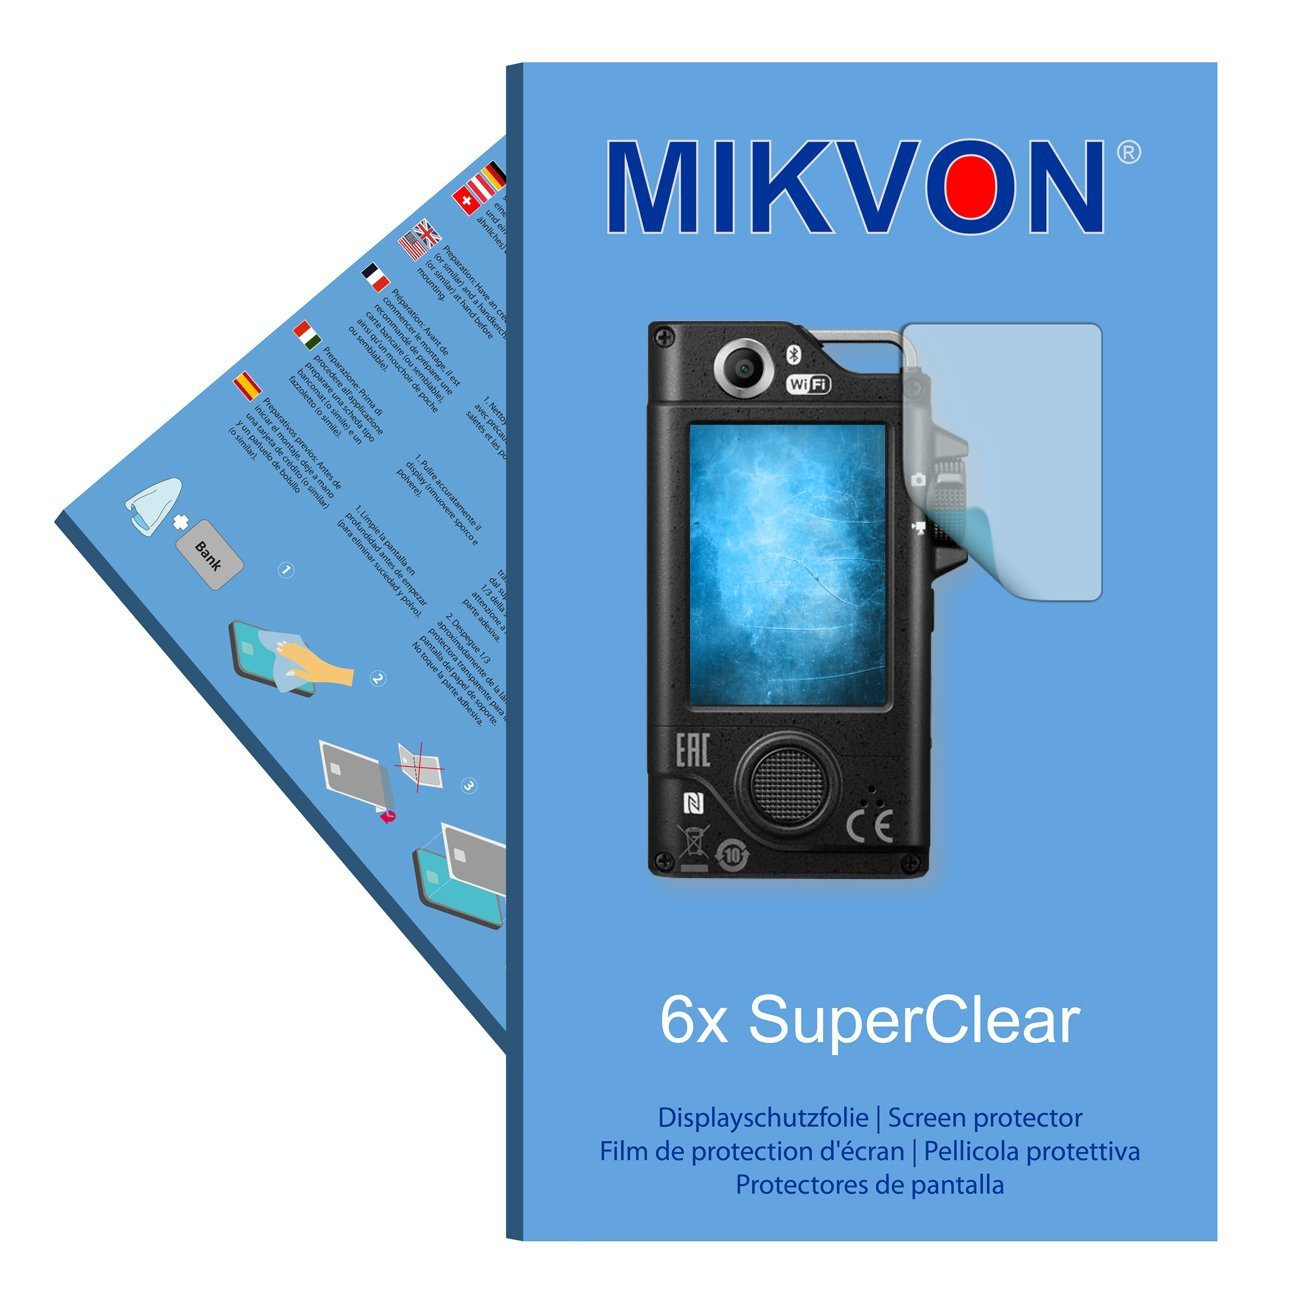 6x Mikvon films screen protector SuperClear for Nikon KeyMission 80 - transparent - Made in Germany